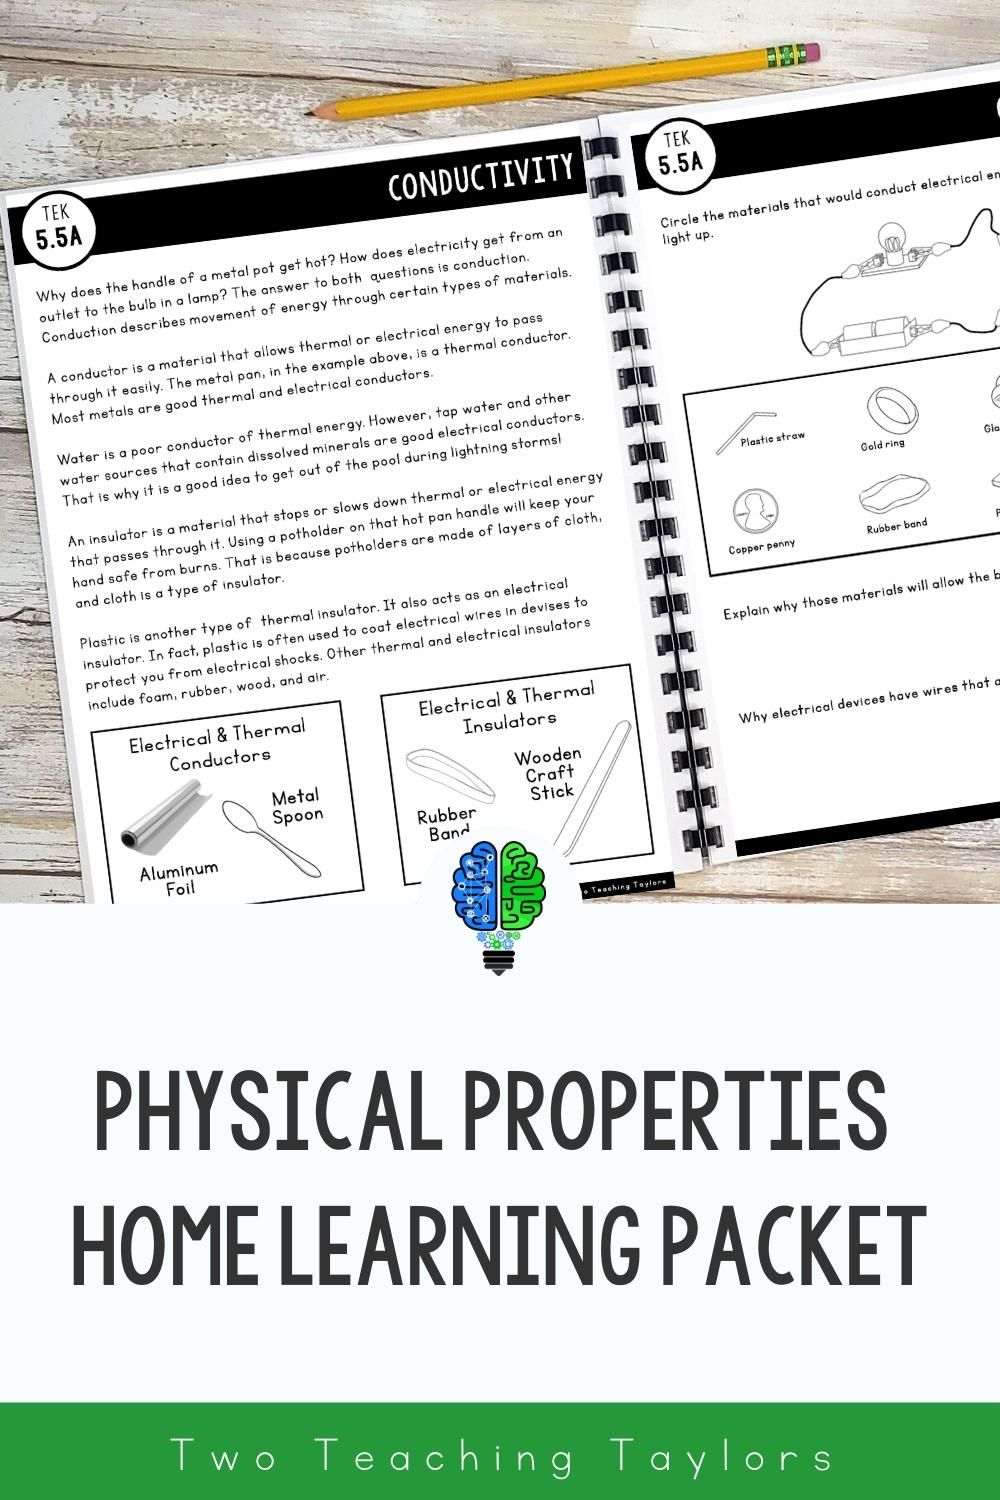 Physical Properties Of Matter Home Learning Packet Activity In 2020 Physical Properties Of Matter Properties Of Matter Physical Properties